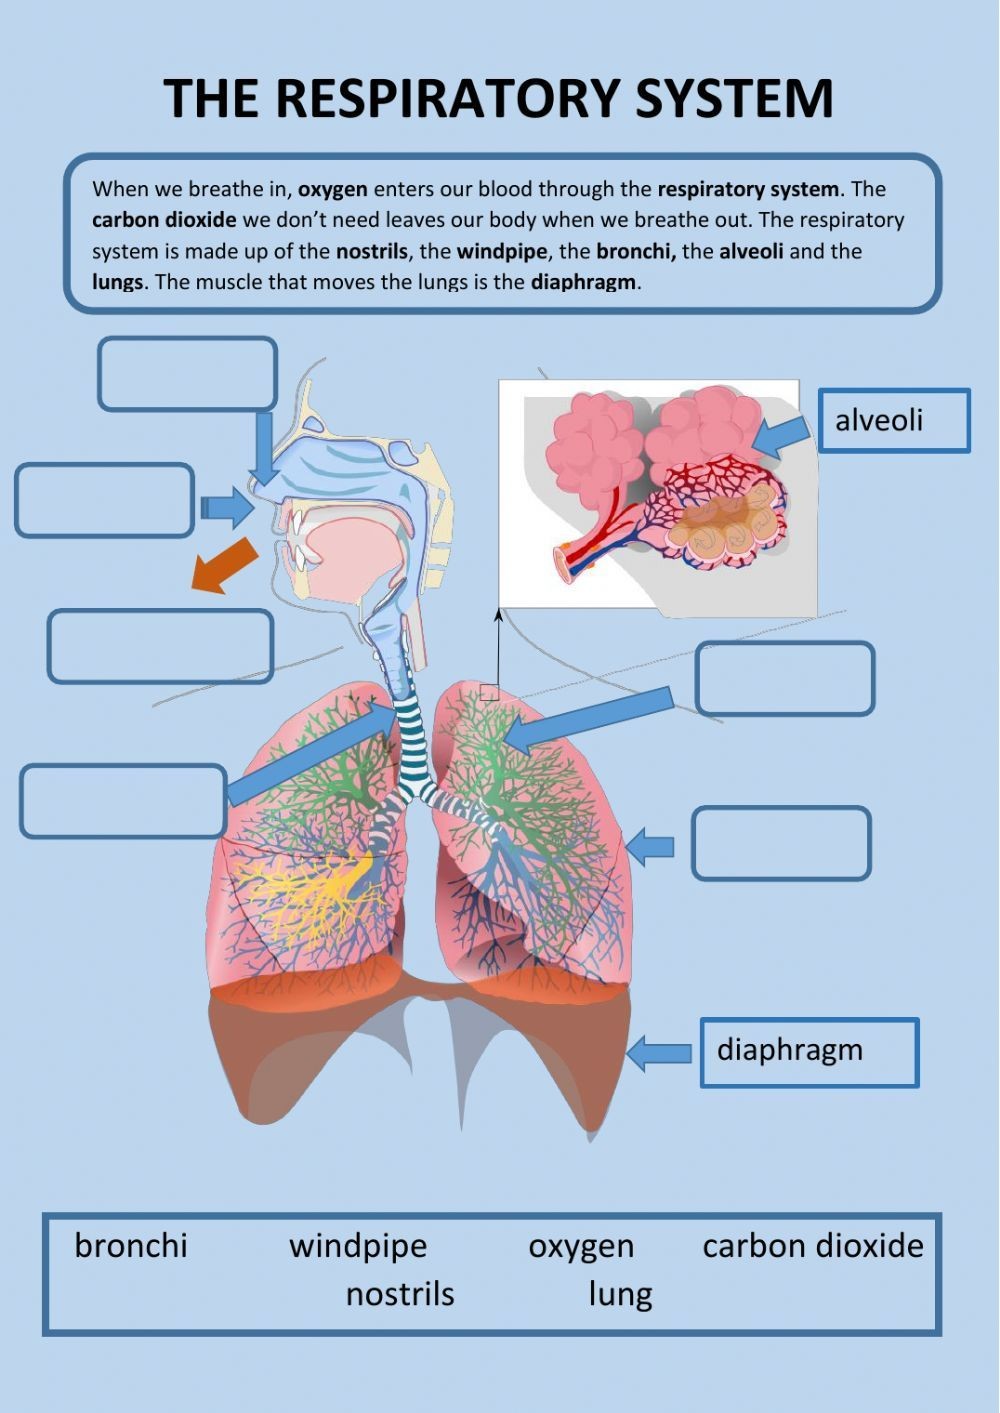 Body Systems Interactive And Downloadable Worksheet You Can Do The Exercises Online Or Download Respiratory System Respiratory System Activities Body Systems